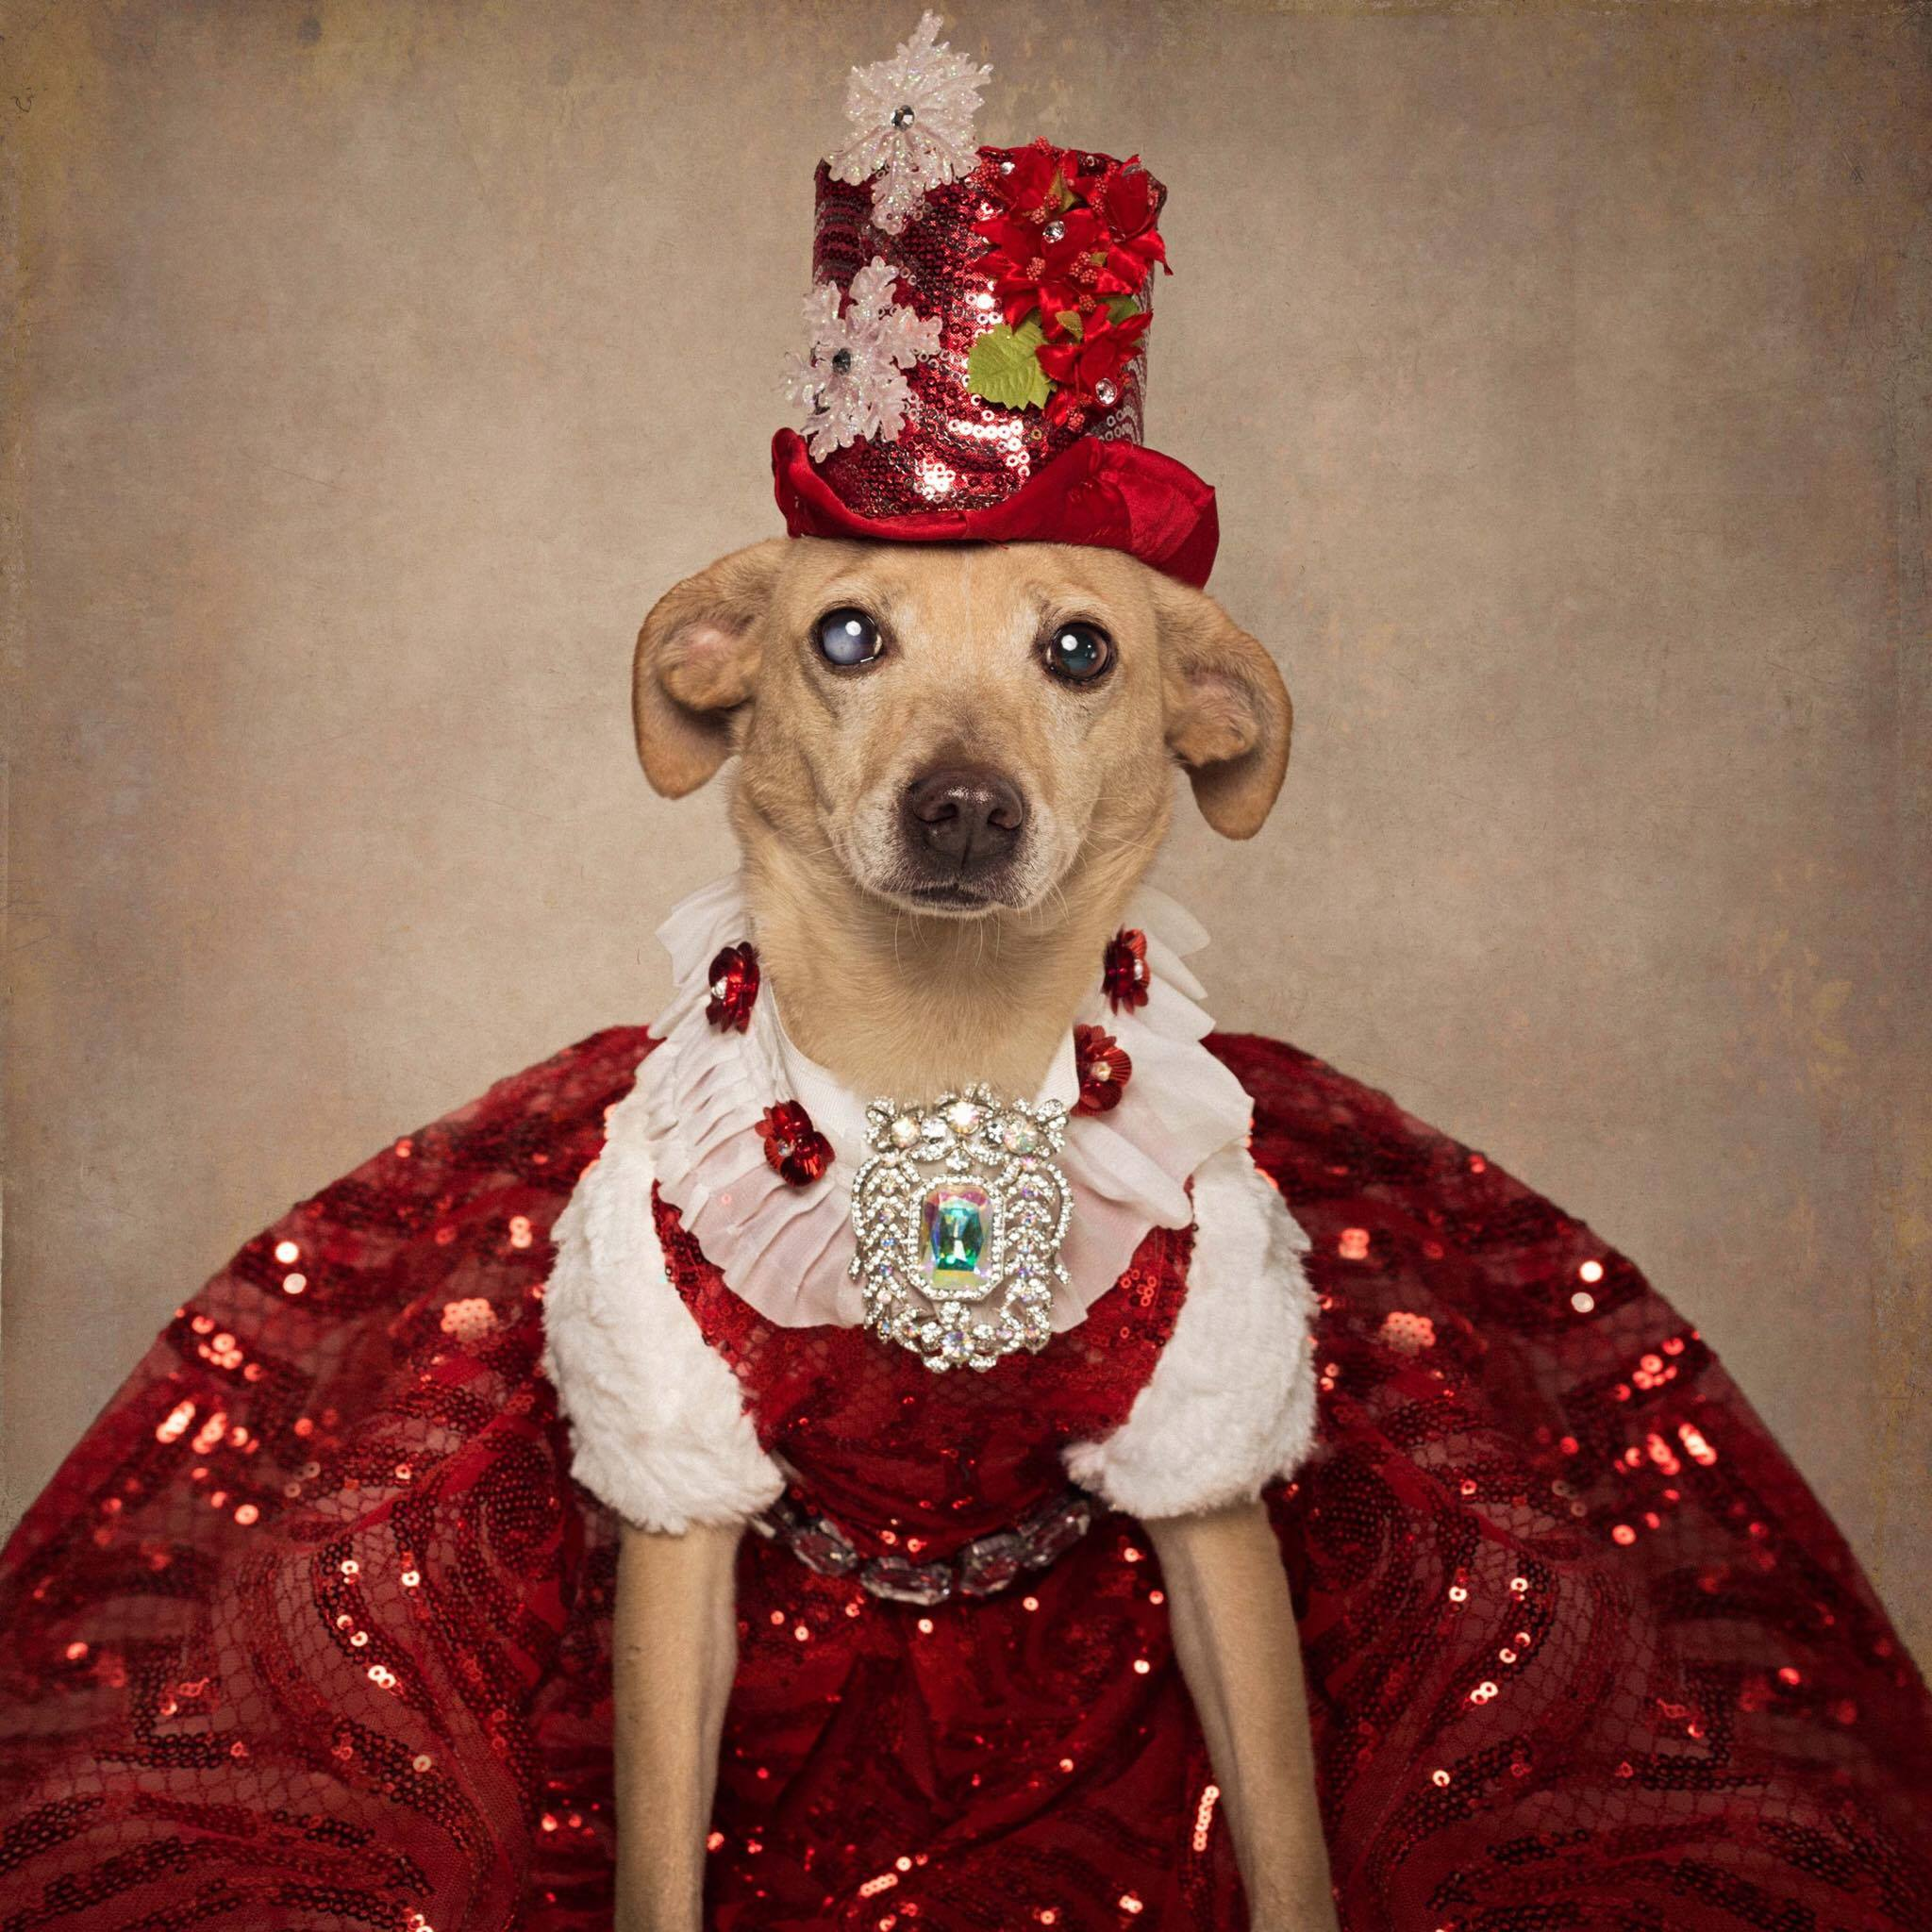 Anthony Rubio, Dog Fashion, Pet Fashion, Dog Model, Pet Couturier, Canine Couture, Gowns For Dogs, Clothing for dogs, 14_o.jpg